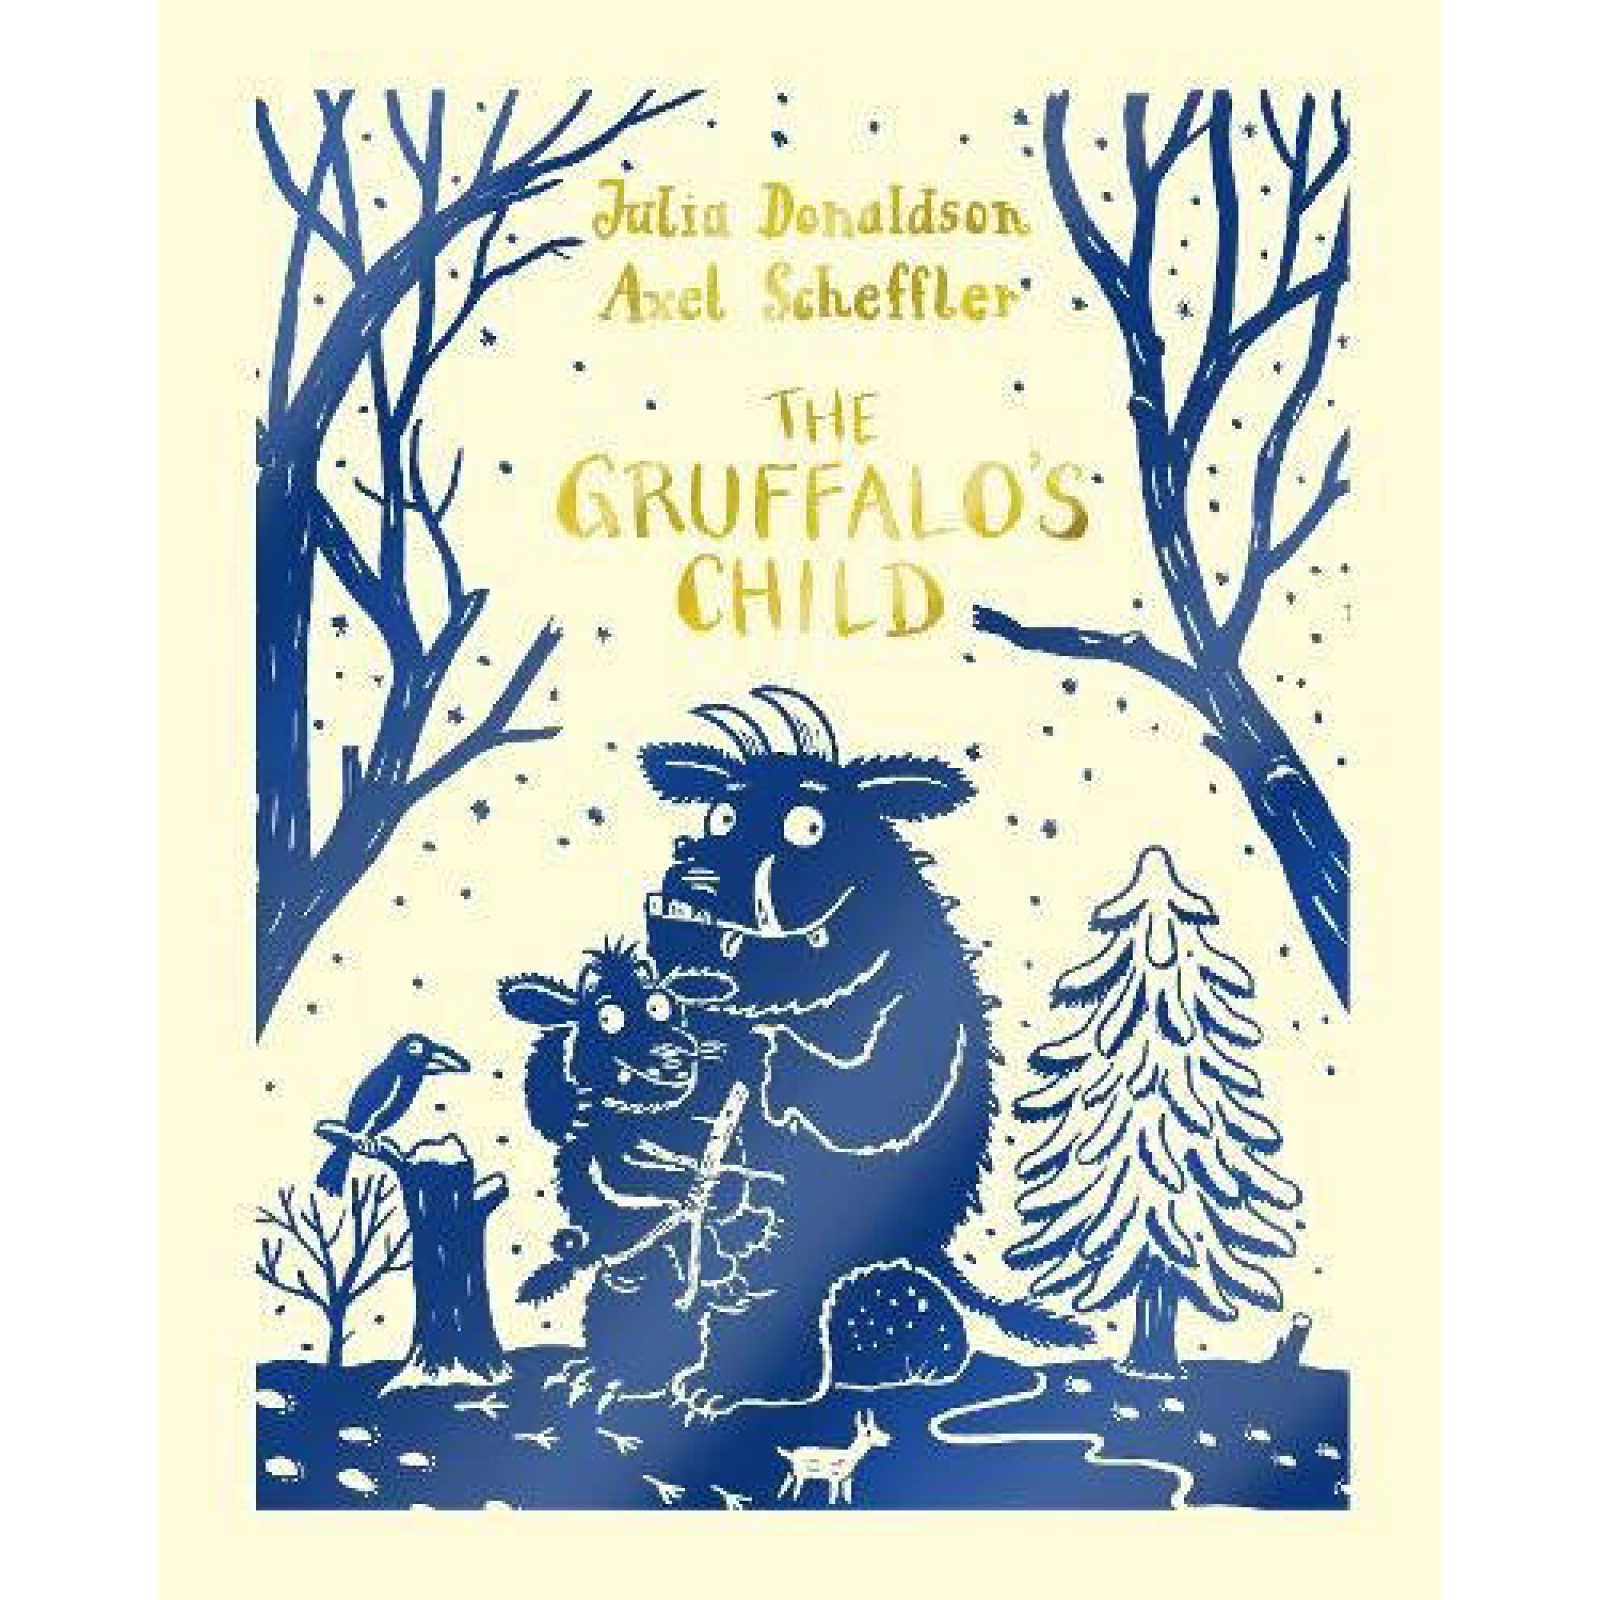 O/PRINT The Gruffalo's Child - Mini Hardback Edition